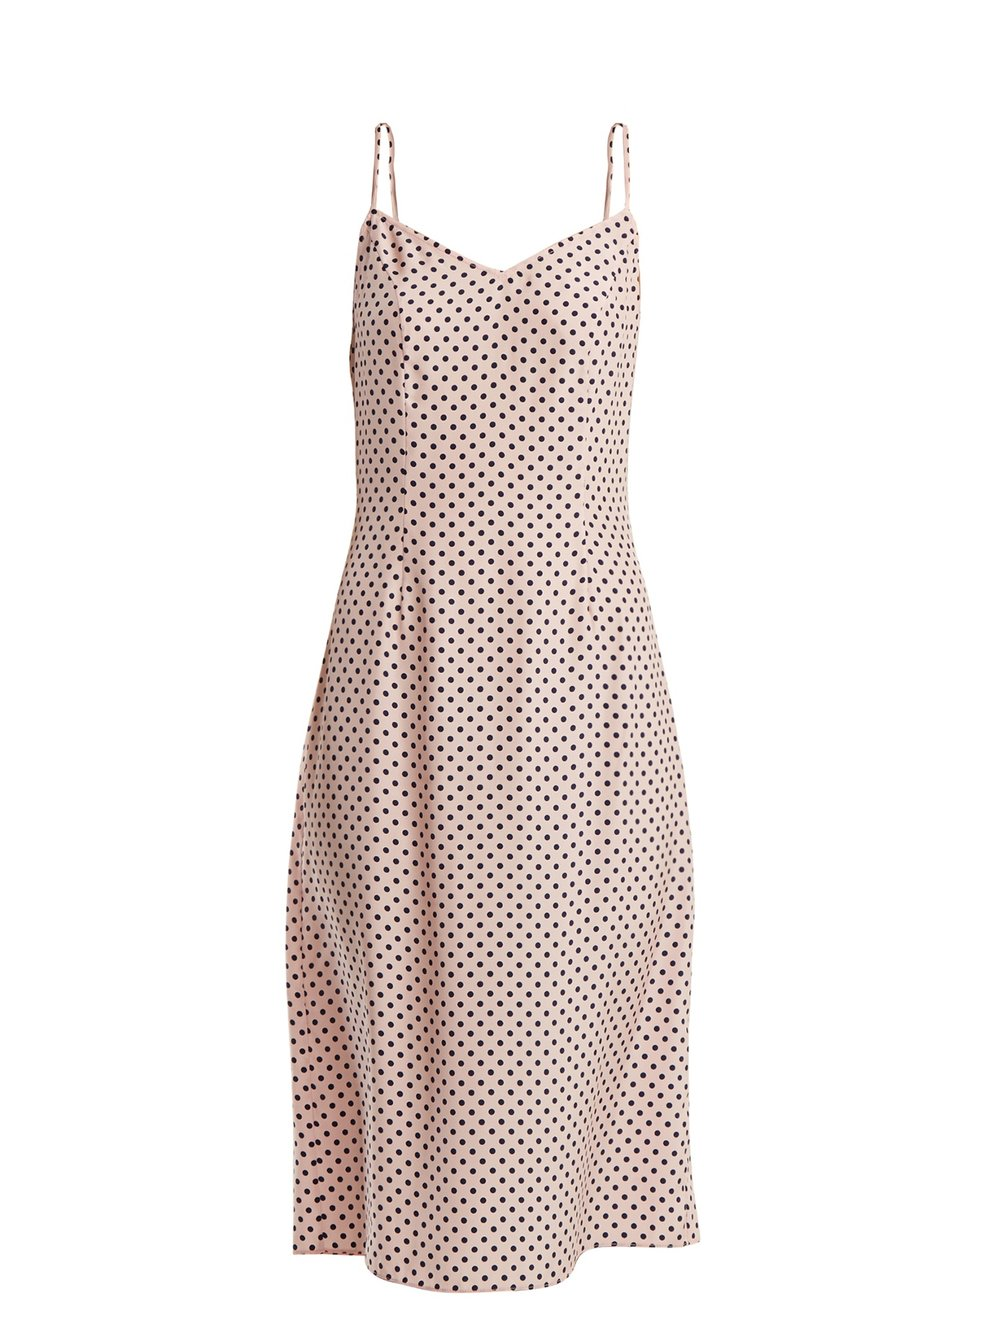 NAVY SMALL POLKA DOT - SHOP NOW